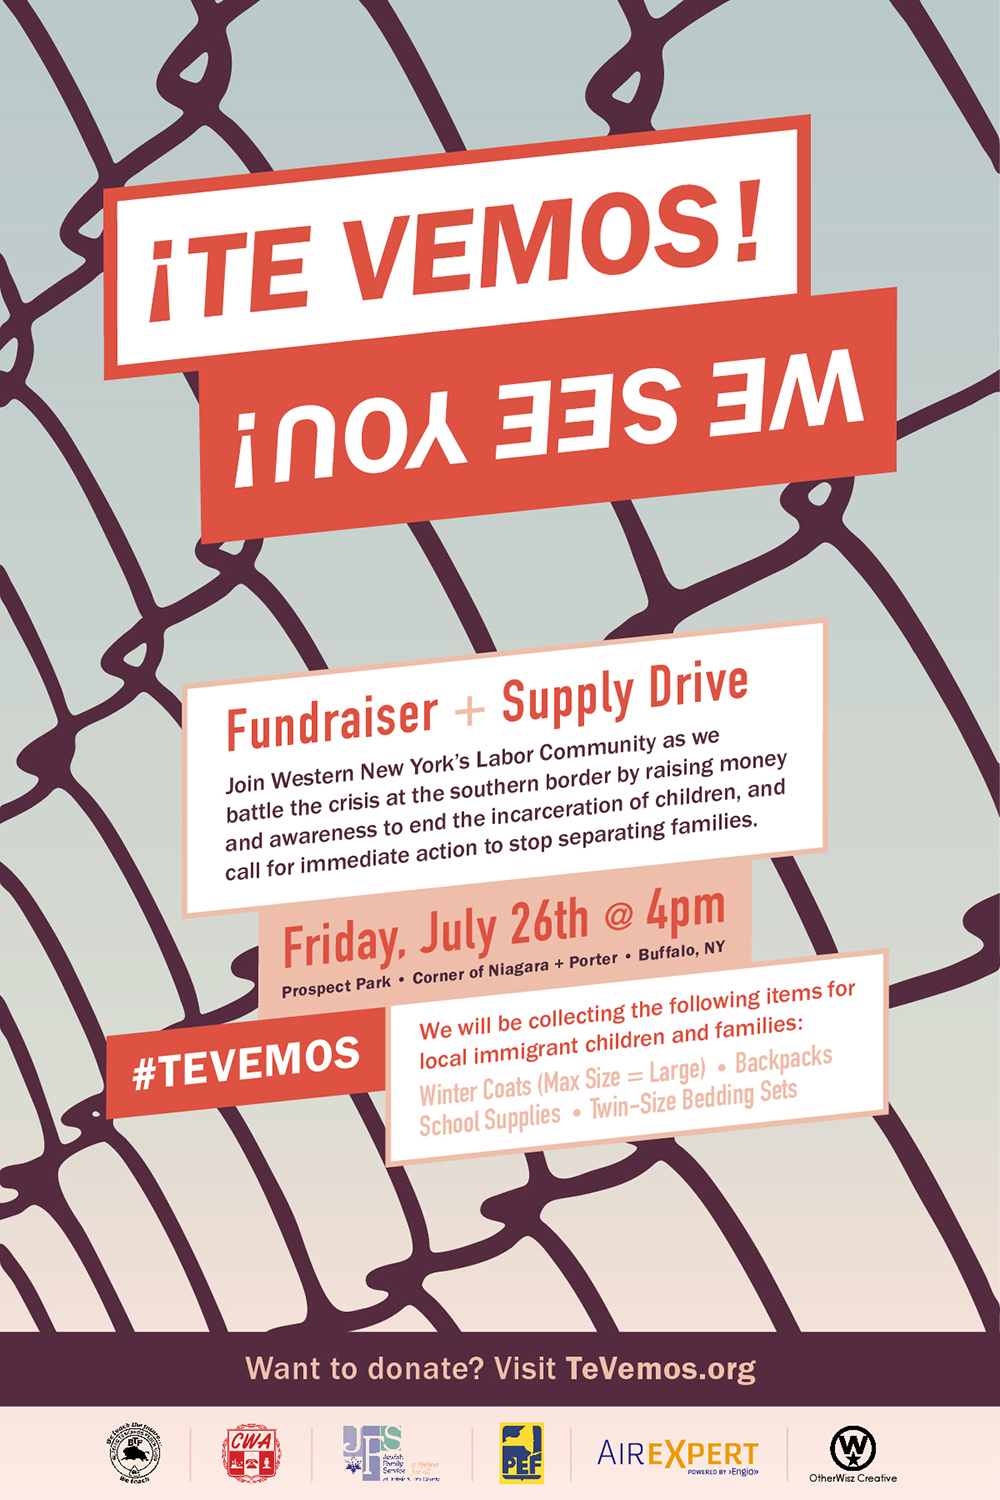 Full size poster for the ¡Te Vemos! Fundraiser and supply drive, asking to join the Western New York Labor Community at the event in Prospect Park